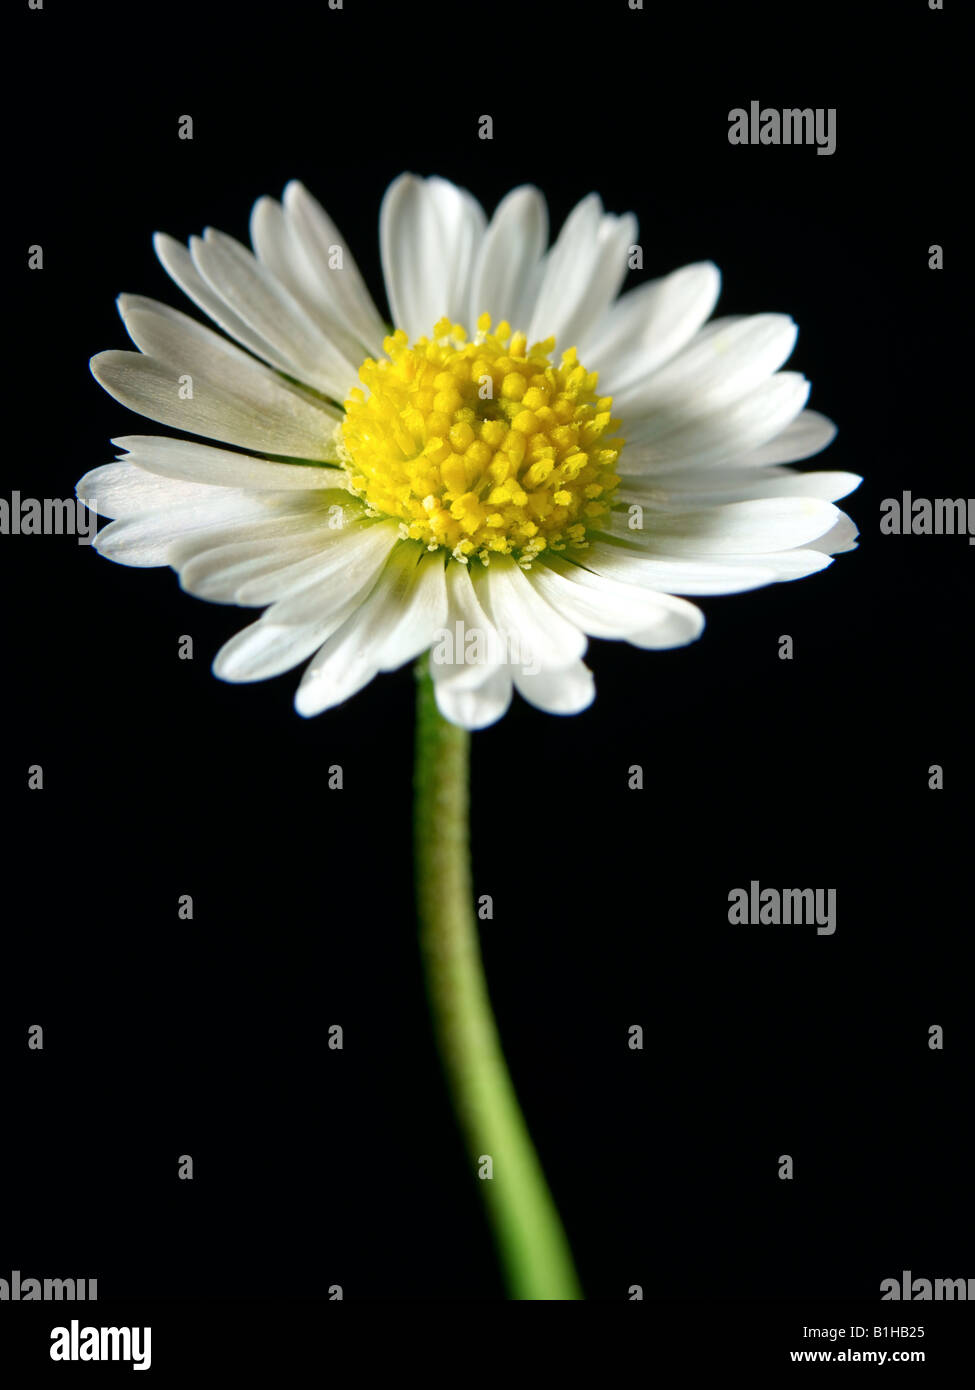 daisy flower - Stock Image